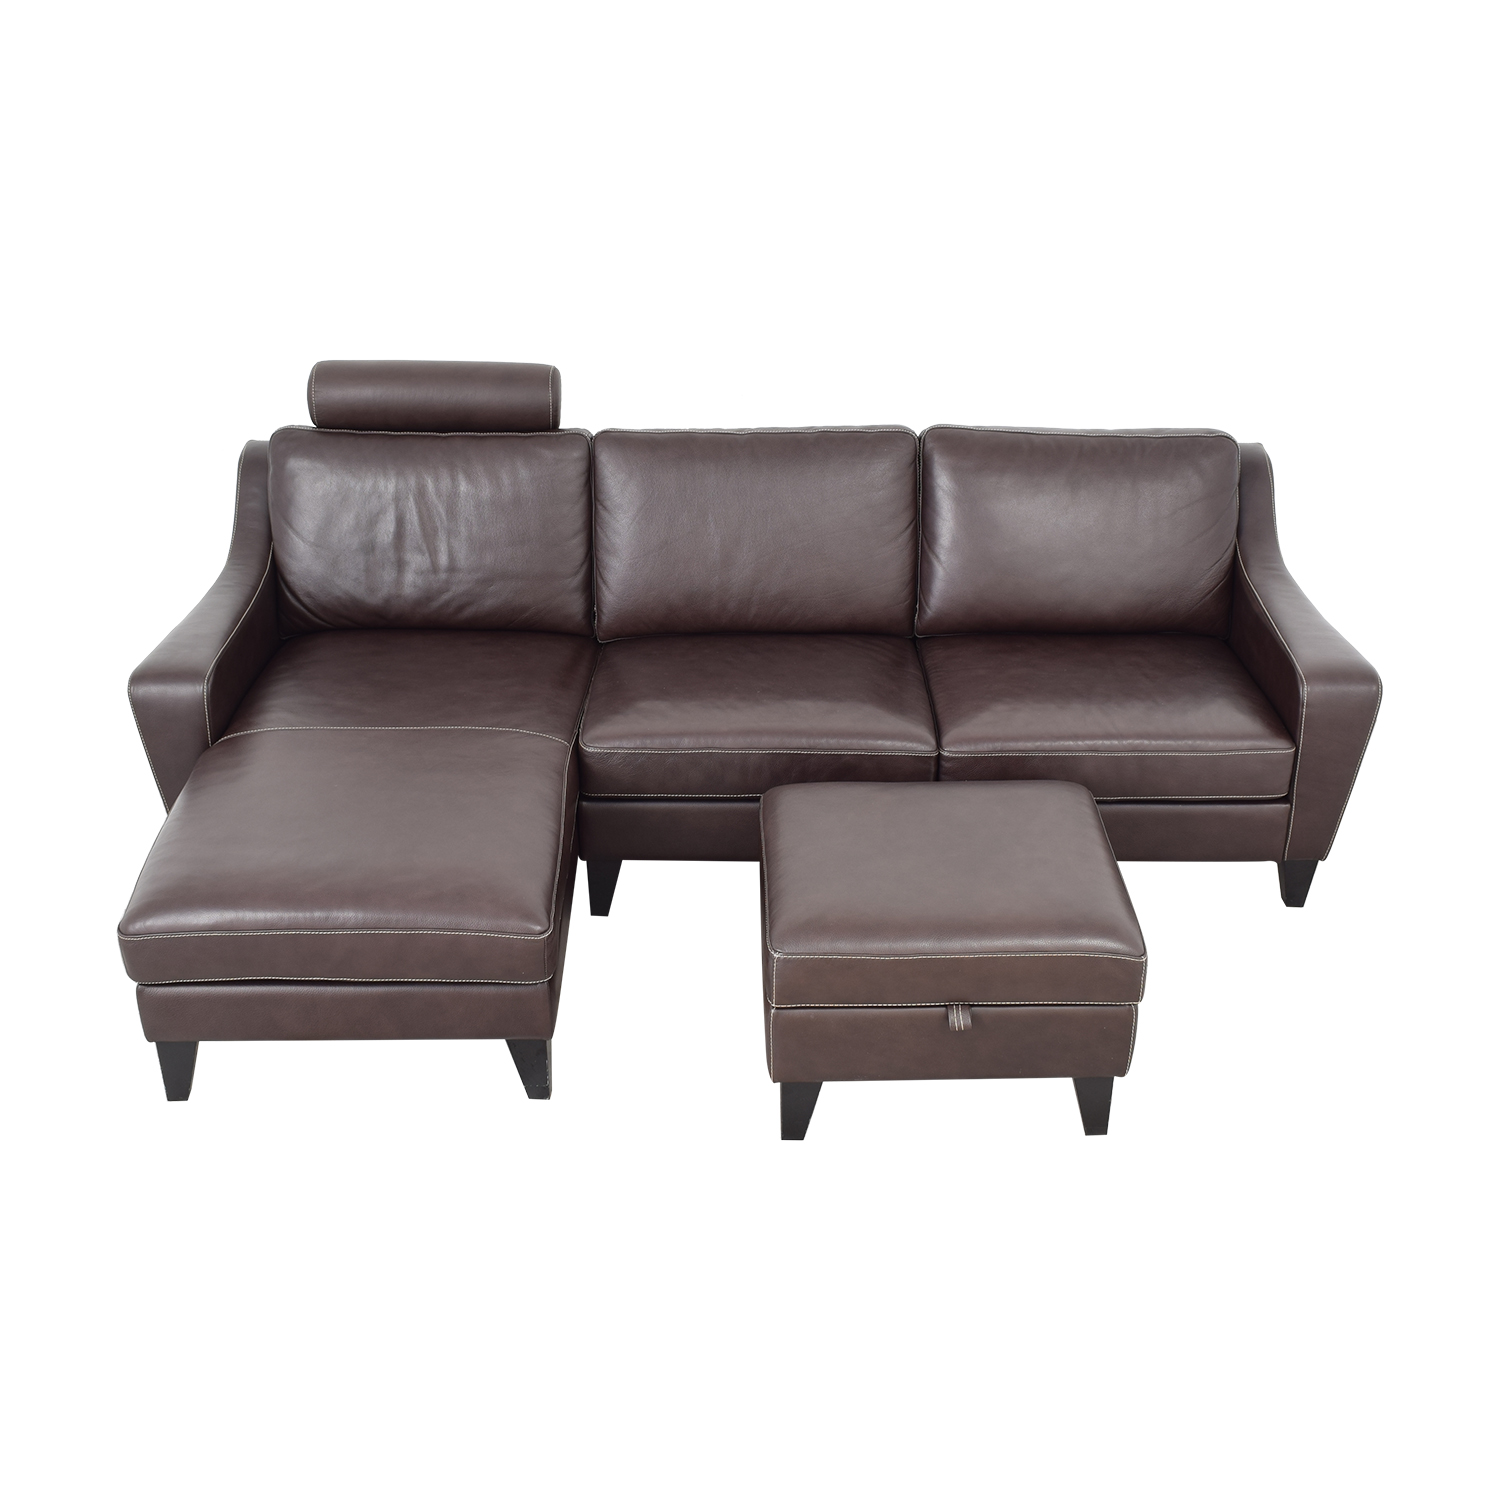 Lind Lind Chaise Sofa with Headrest and Ottoman ct